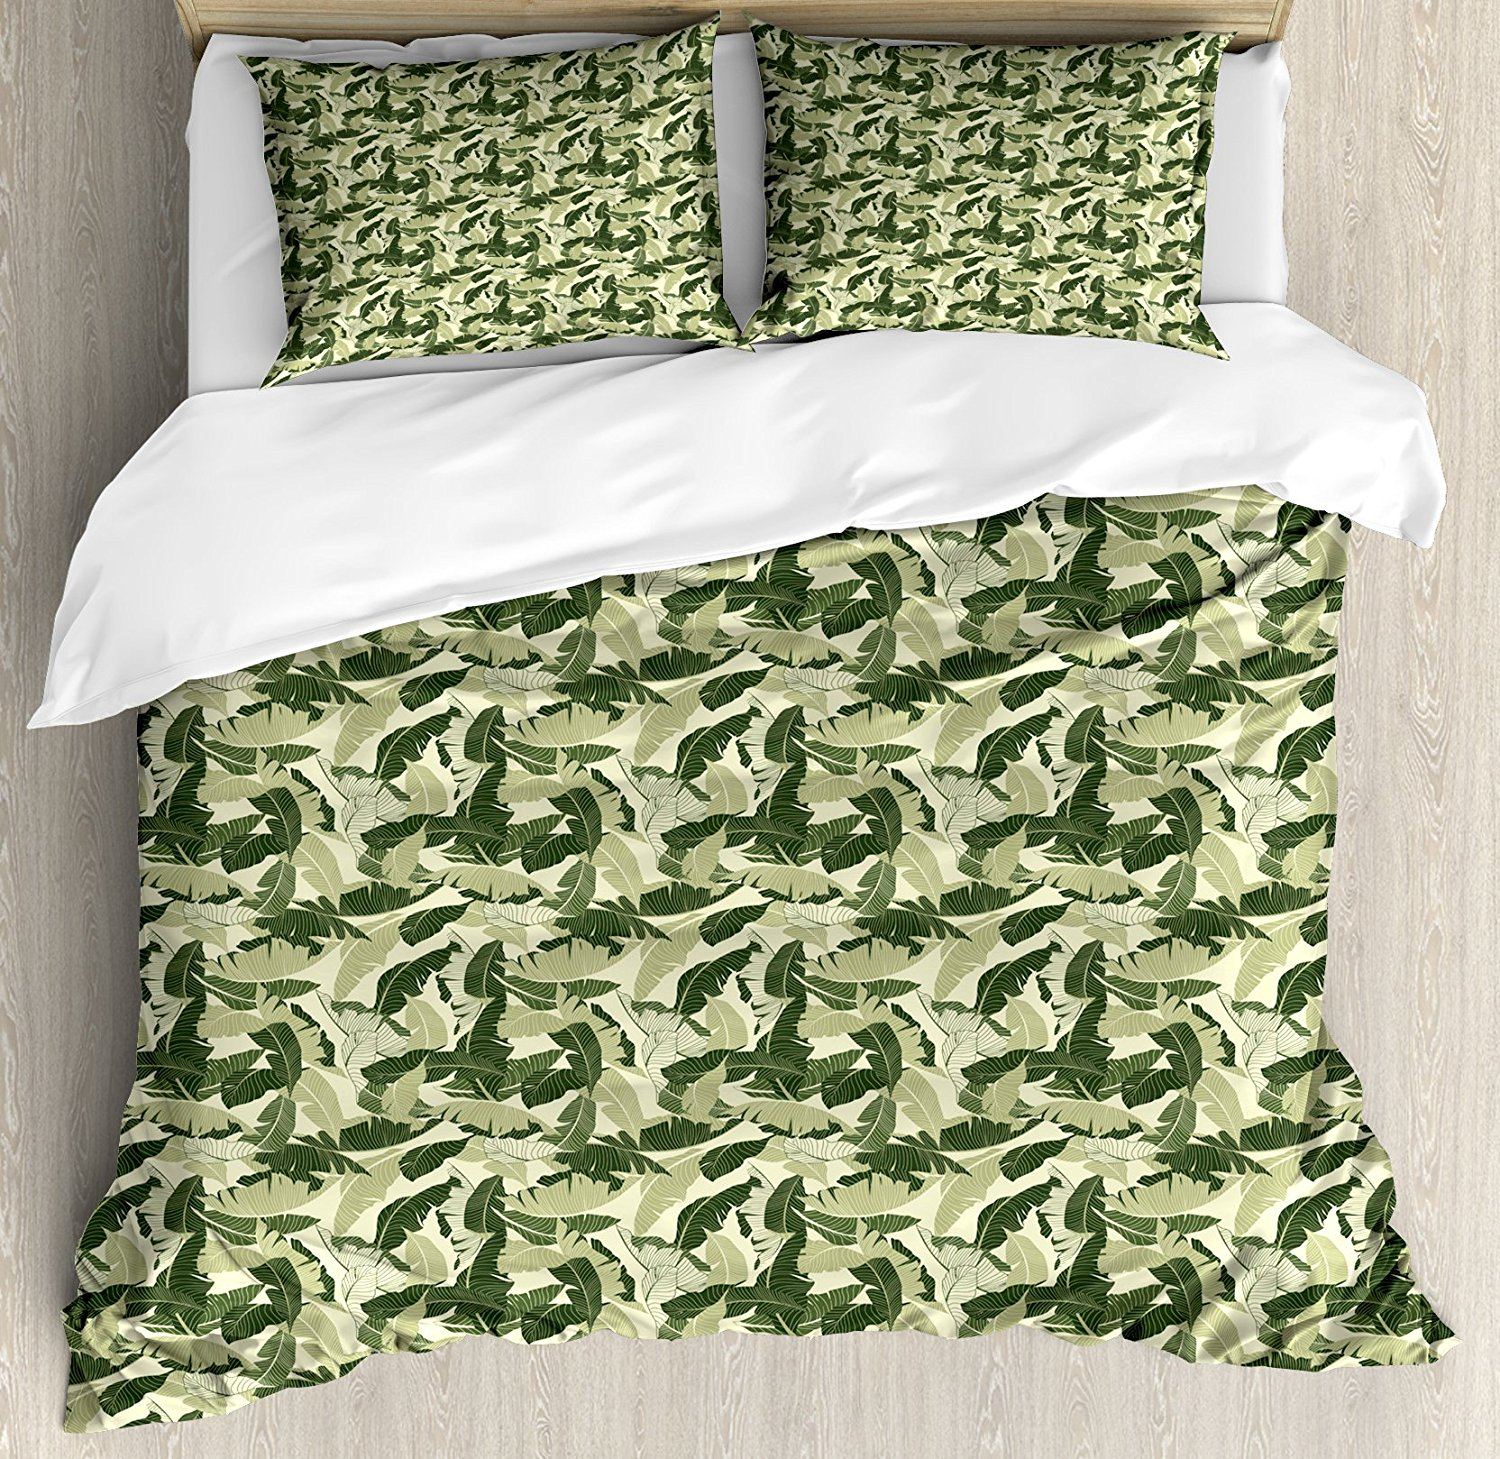 Banana Leaf Duvet Cover Set, Caribbean Exotic Tree Foliage with Vintage Look in Green Shades, 4 Piece Bedding Set